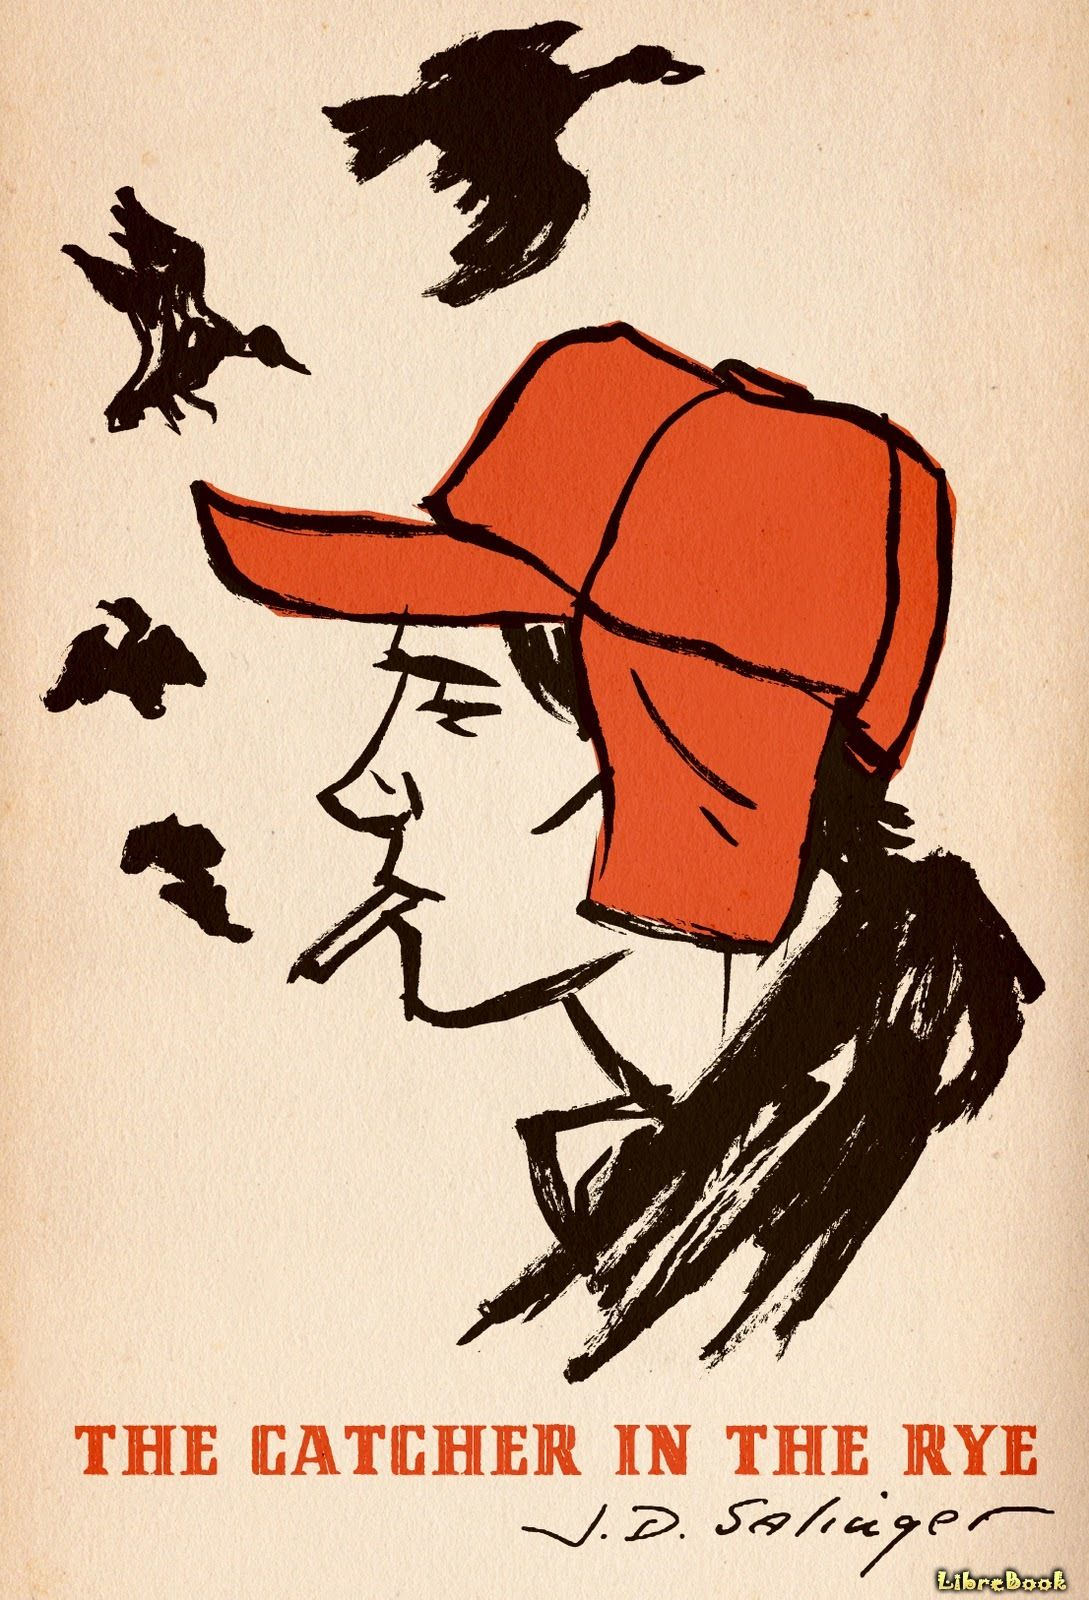 an examination of the character of holden caulfield in the novel the catcher in the rye by jd saling His character holden caulfield in the catcher in the rye reveals some similarities with salinger with an unimpressive school career and a need to find his place in the world, although not in a.